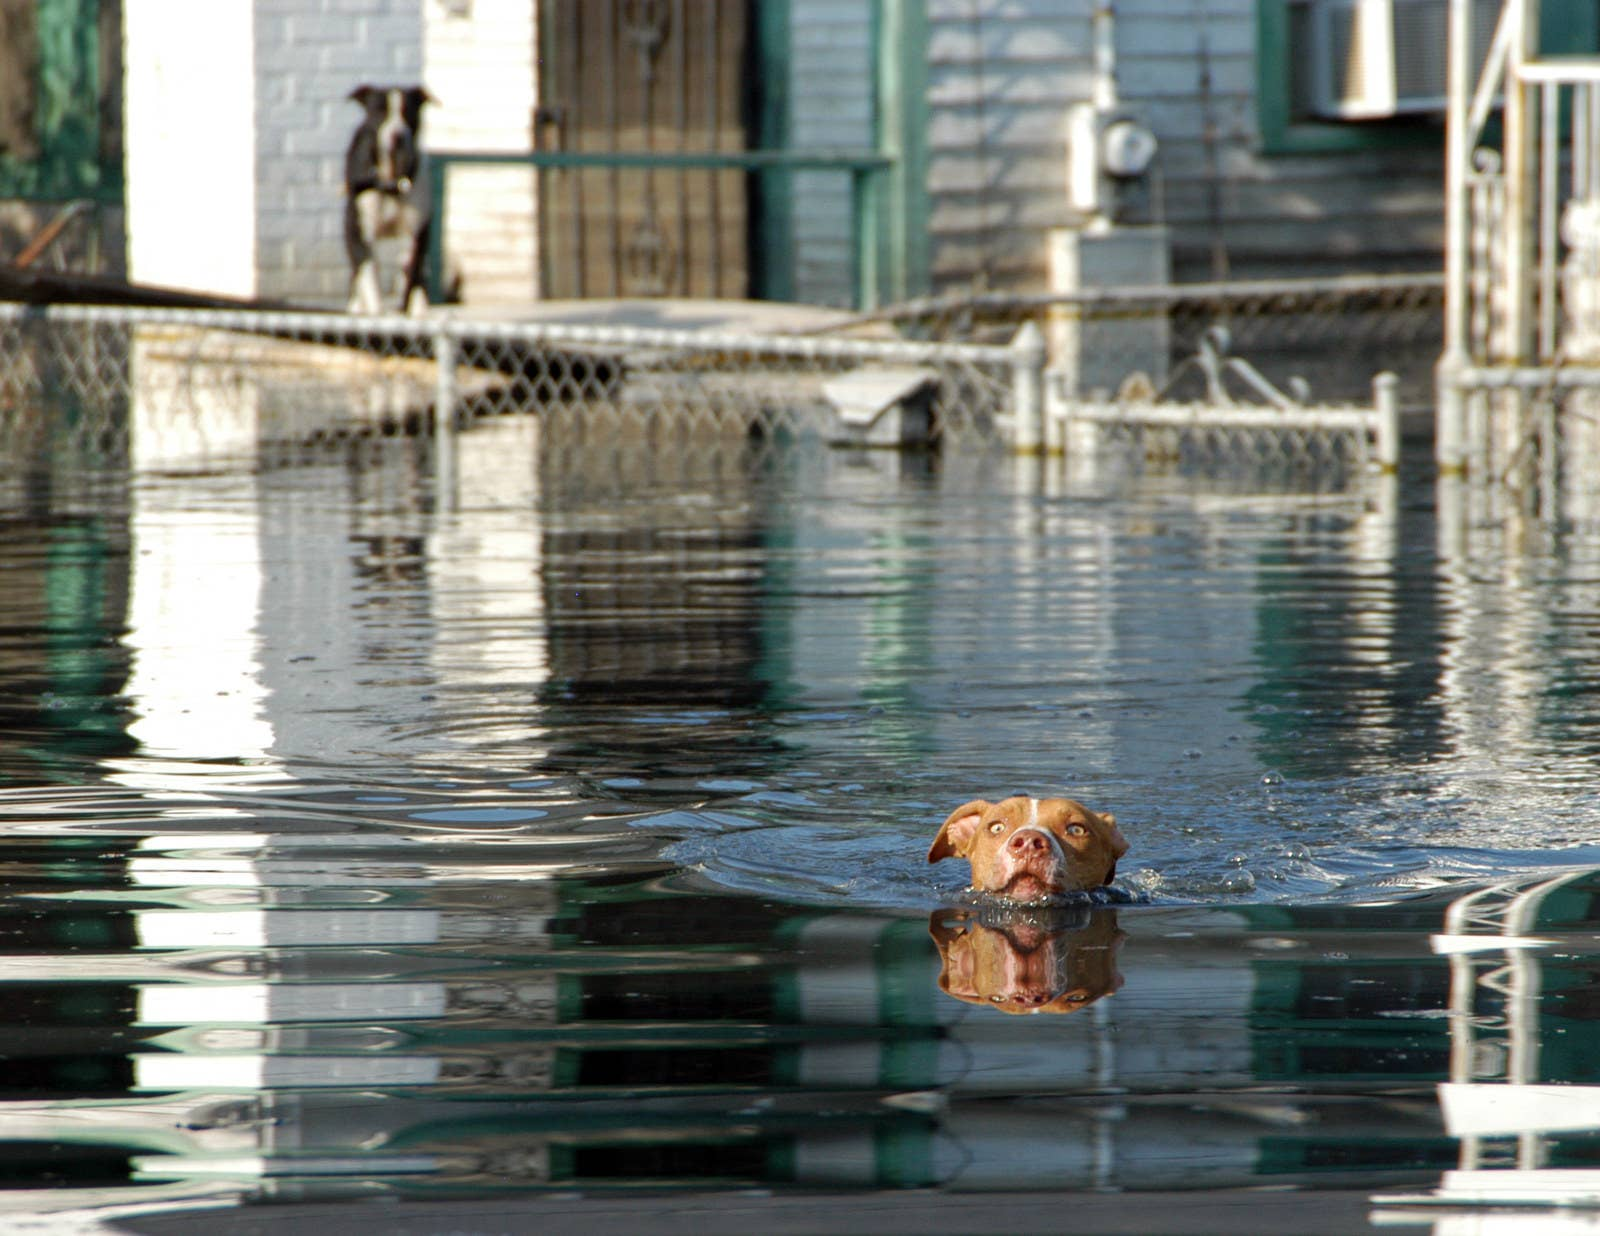 How Hurricane Katrina Turned Pets Into People - Some people tied their dogs up and left them to die during the flood